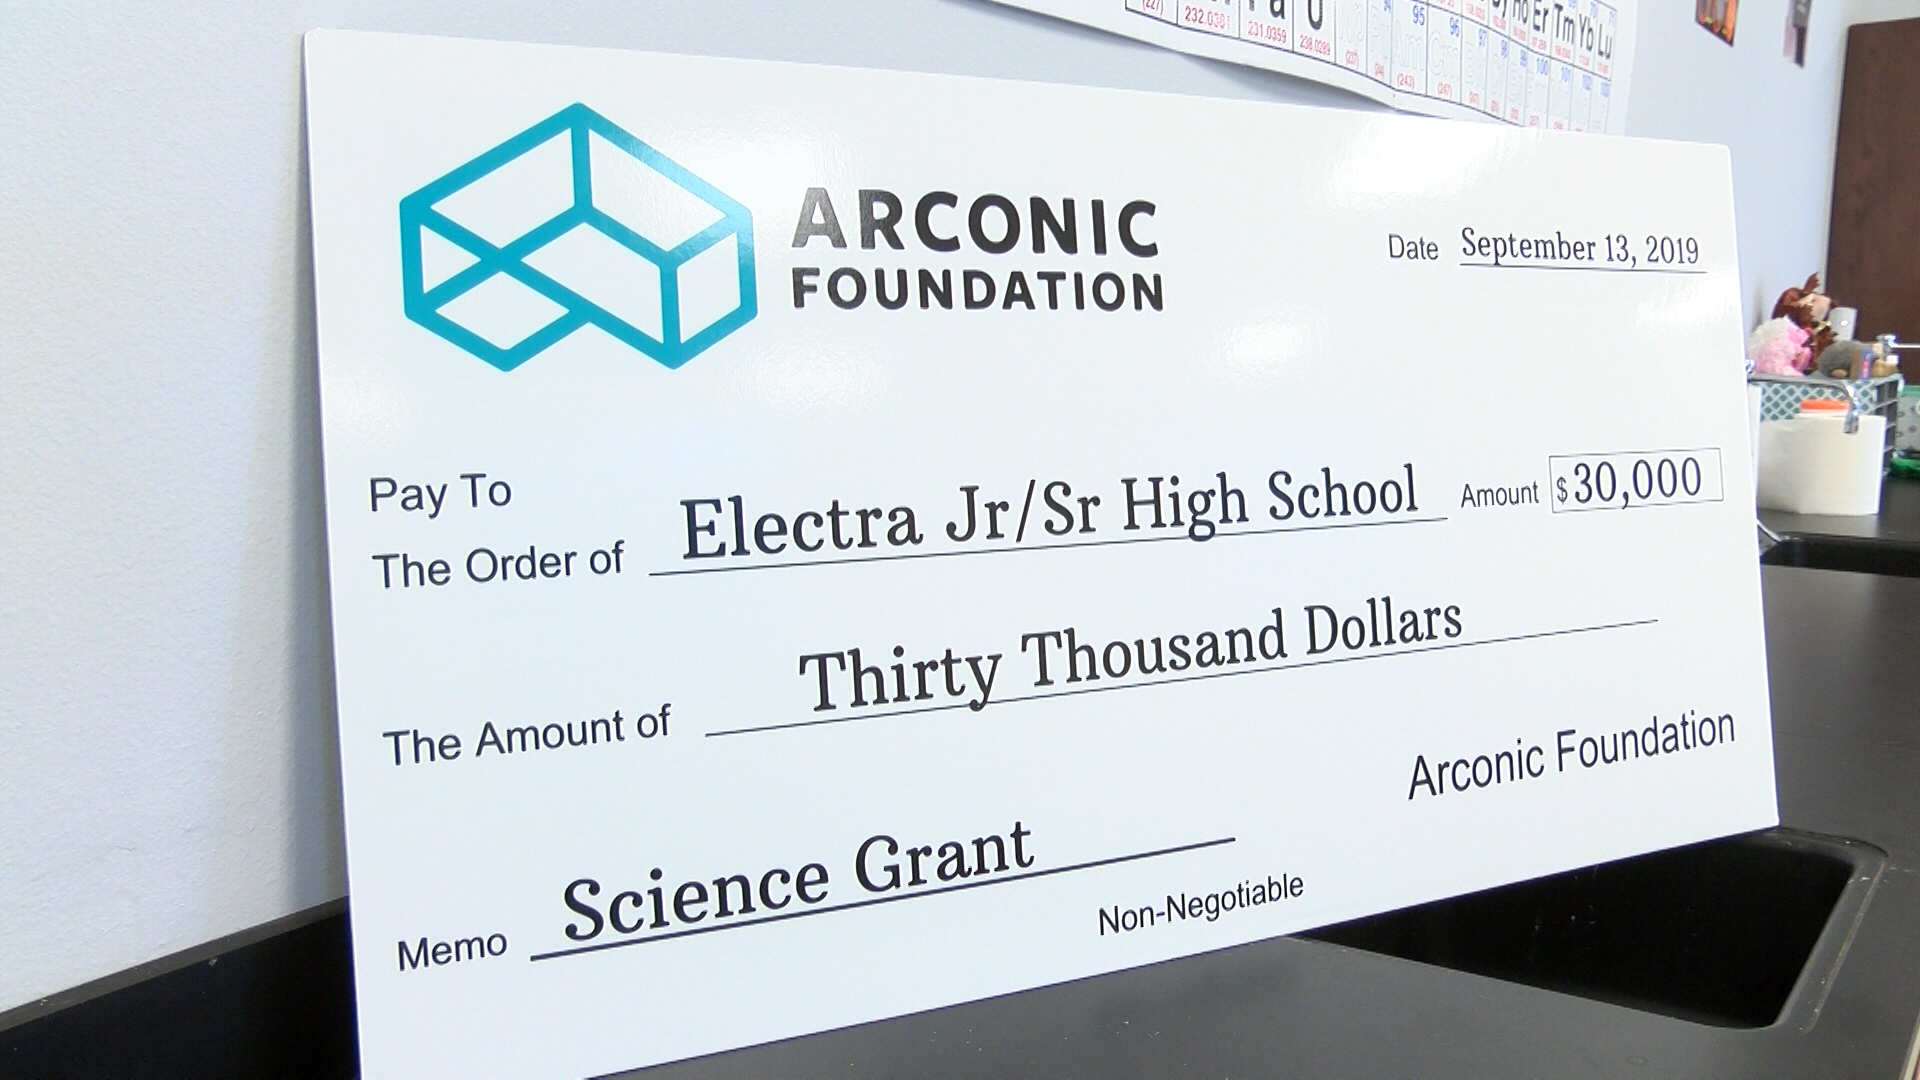 For the first time in a very long time, Electra High School leaders are purchasing new equipment for their science department after being awarded a $30,000 grant.